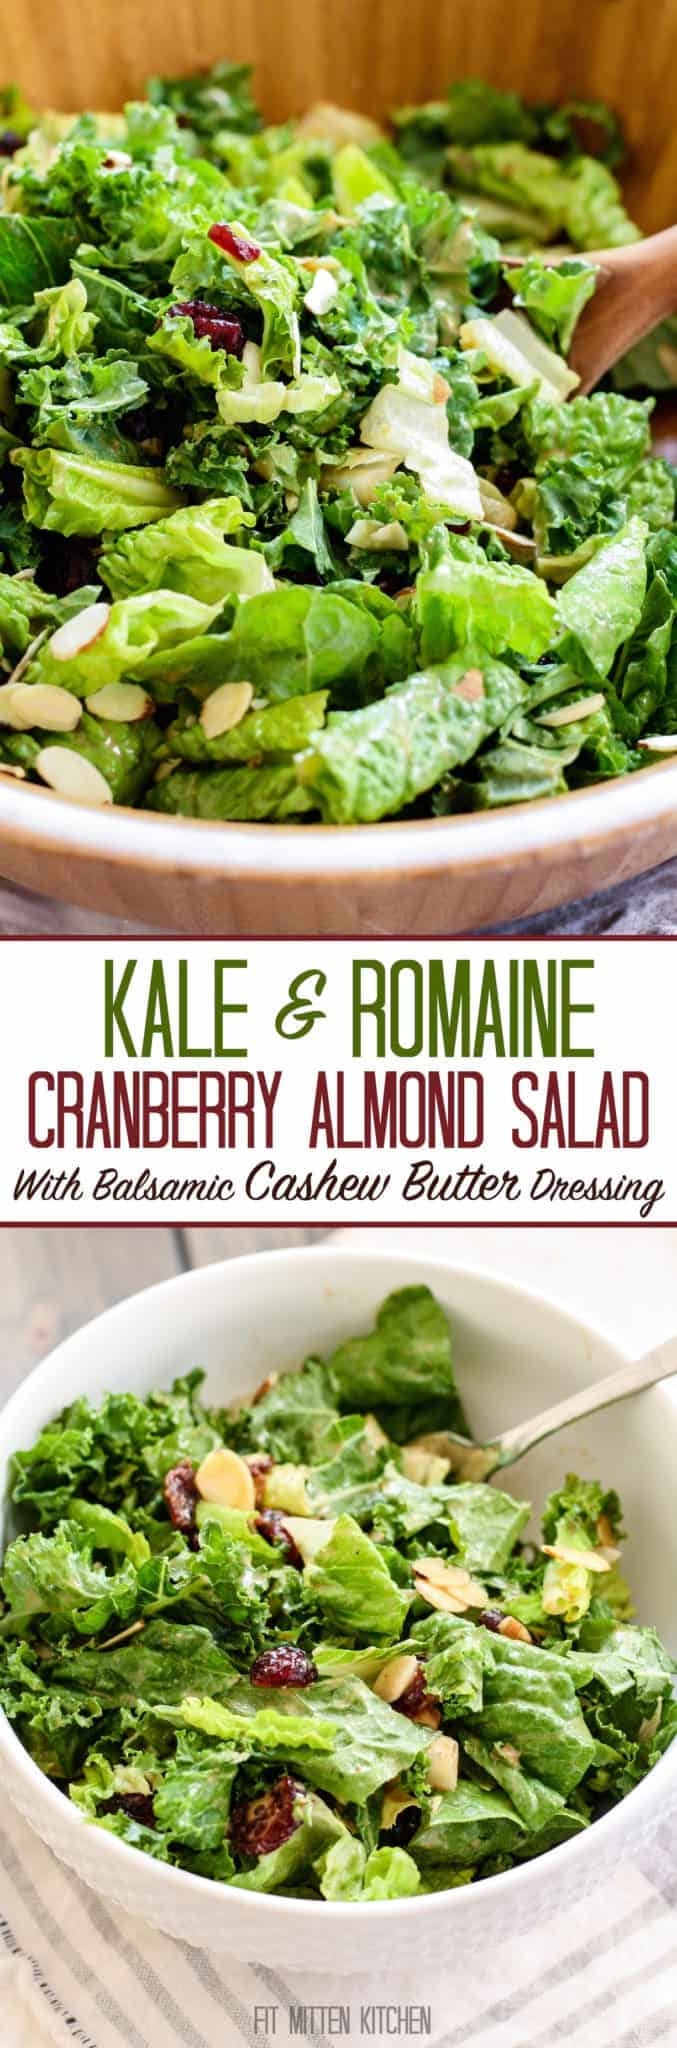 Kale and Romaine Cranberry Almond Salad